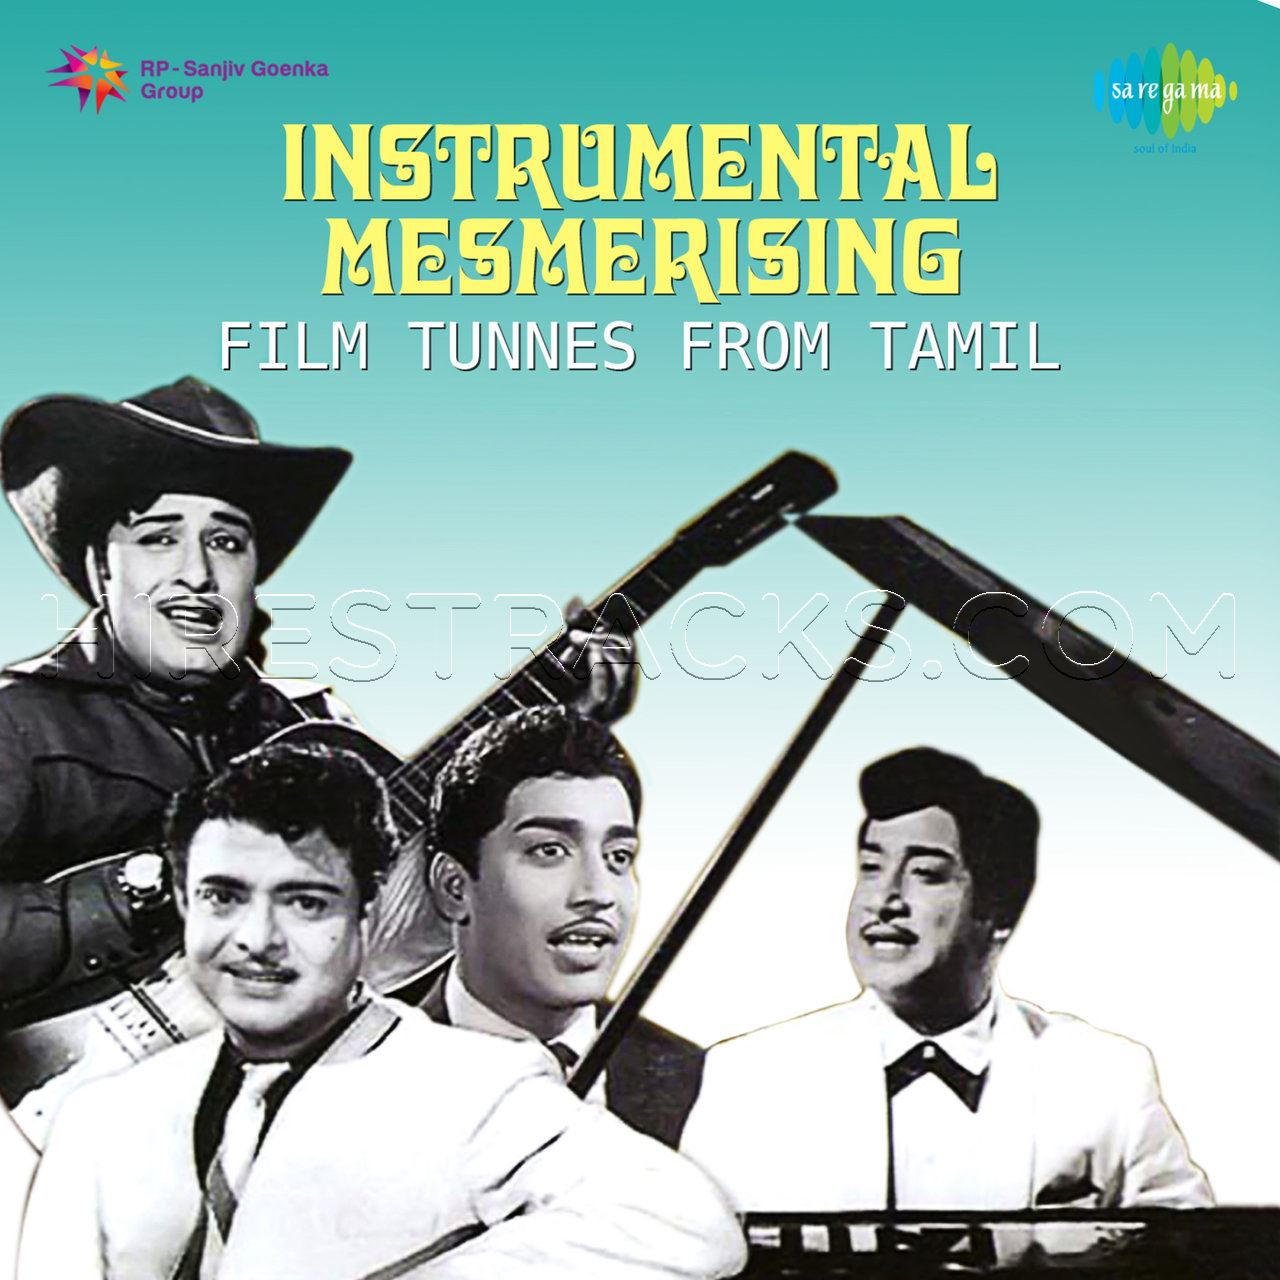 Instrumental Mesmerising Film Tunes from Tamil (2009) (Various Artists)